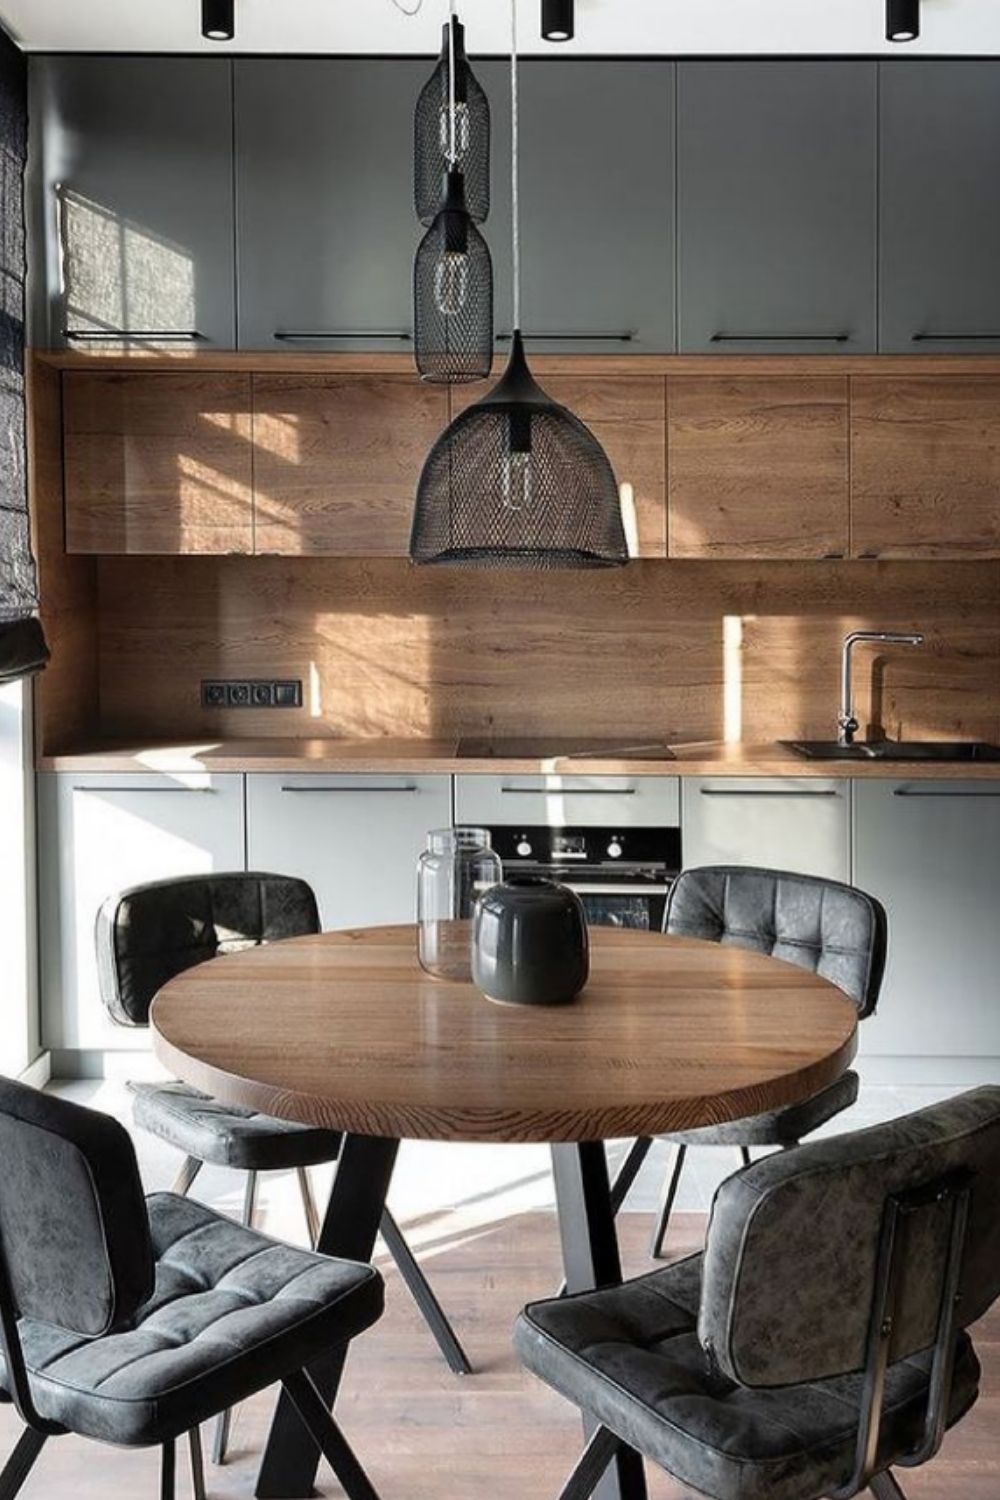 40+ Top Small Kitchen Ideas Layout and Design Tips 2021!